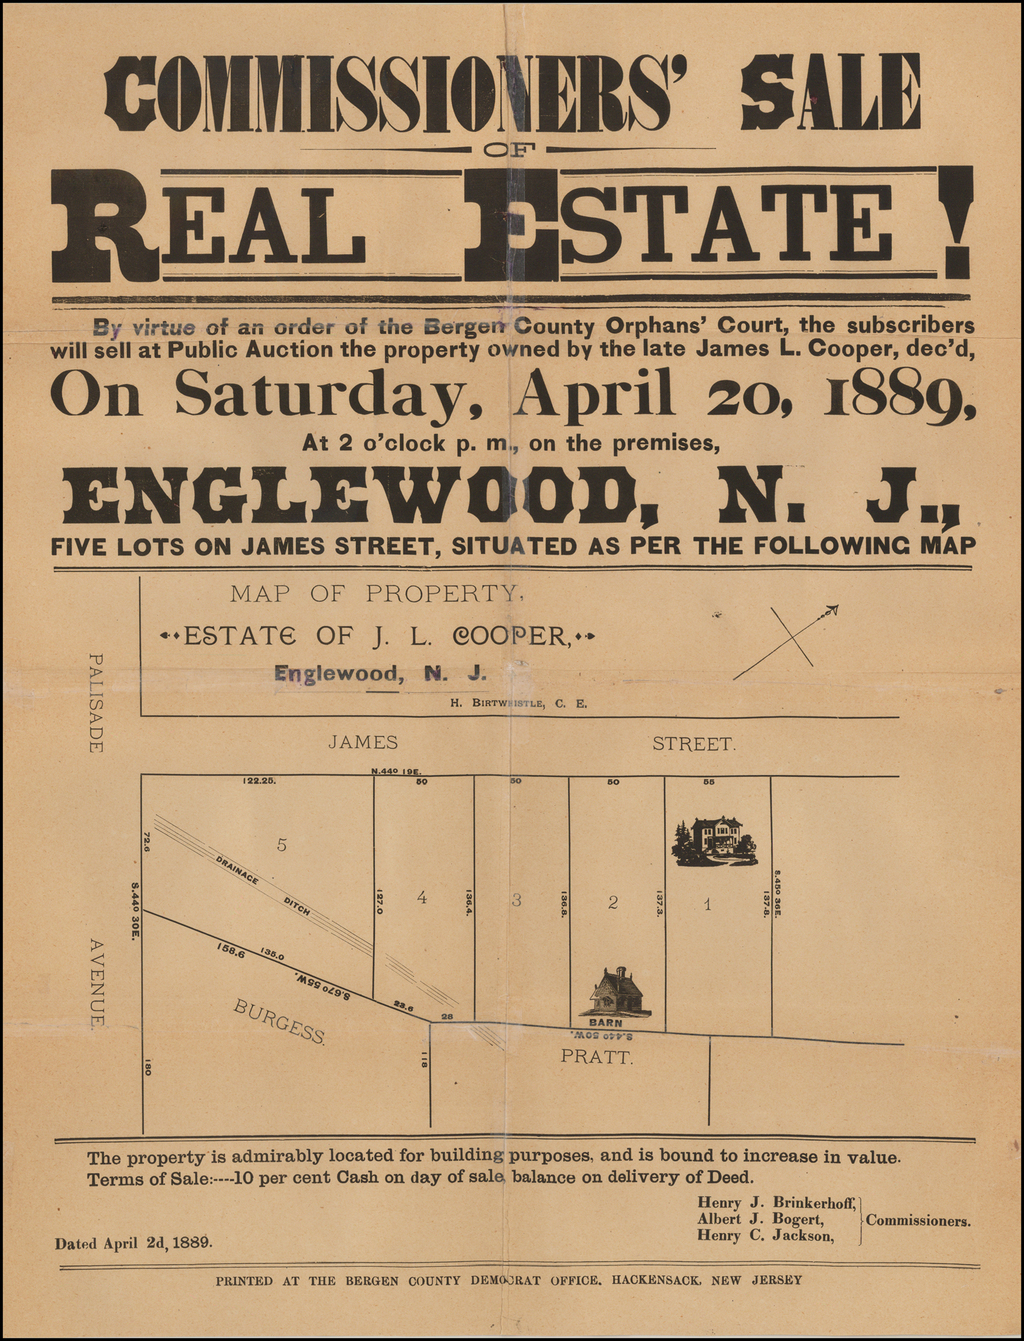 [Englewood, New Jersey]  Commissoner's Sale of Real Estate!  By virtue of an order of the Bergen County Orphan's Court . . . Saturday, April 20, 1889 . . . Englewood, N. J . . . Estate of J. L. Cooper . . .  By Bergen County Democrat